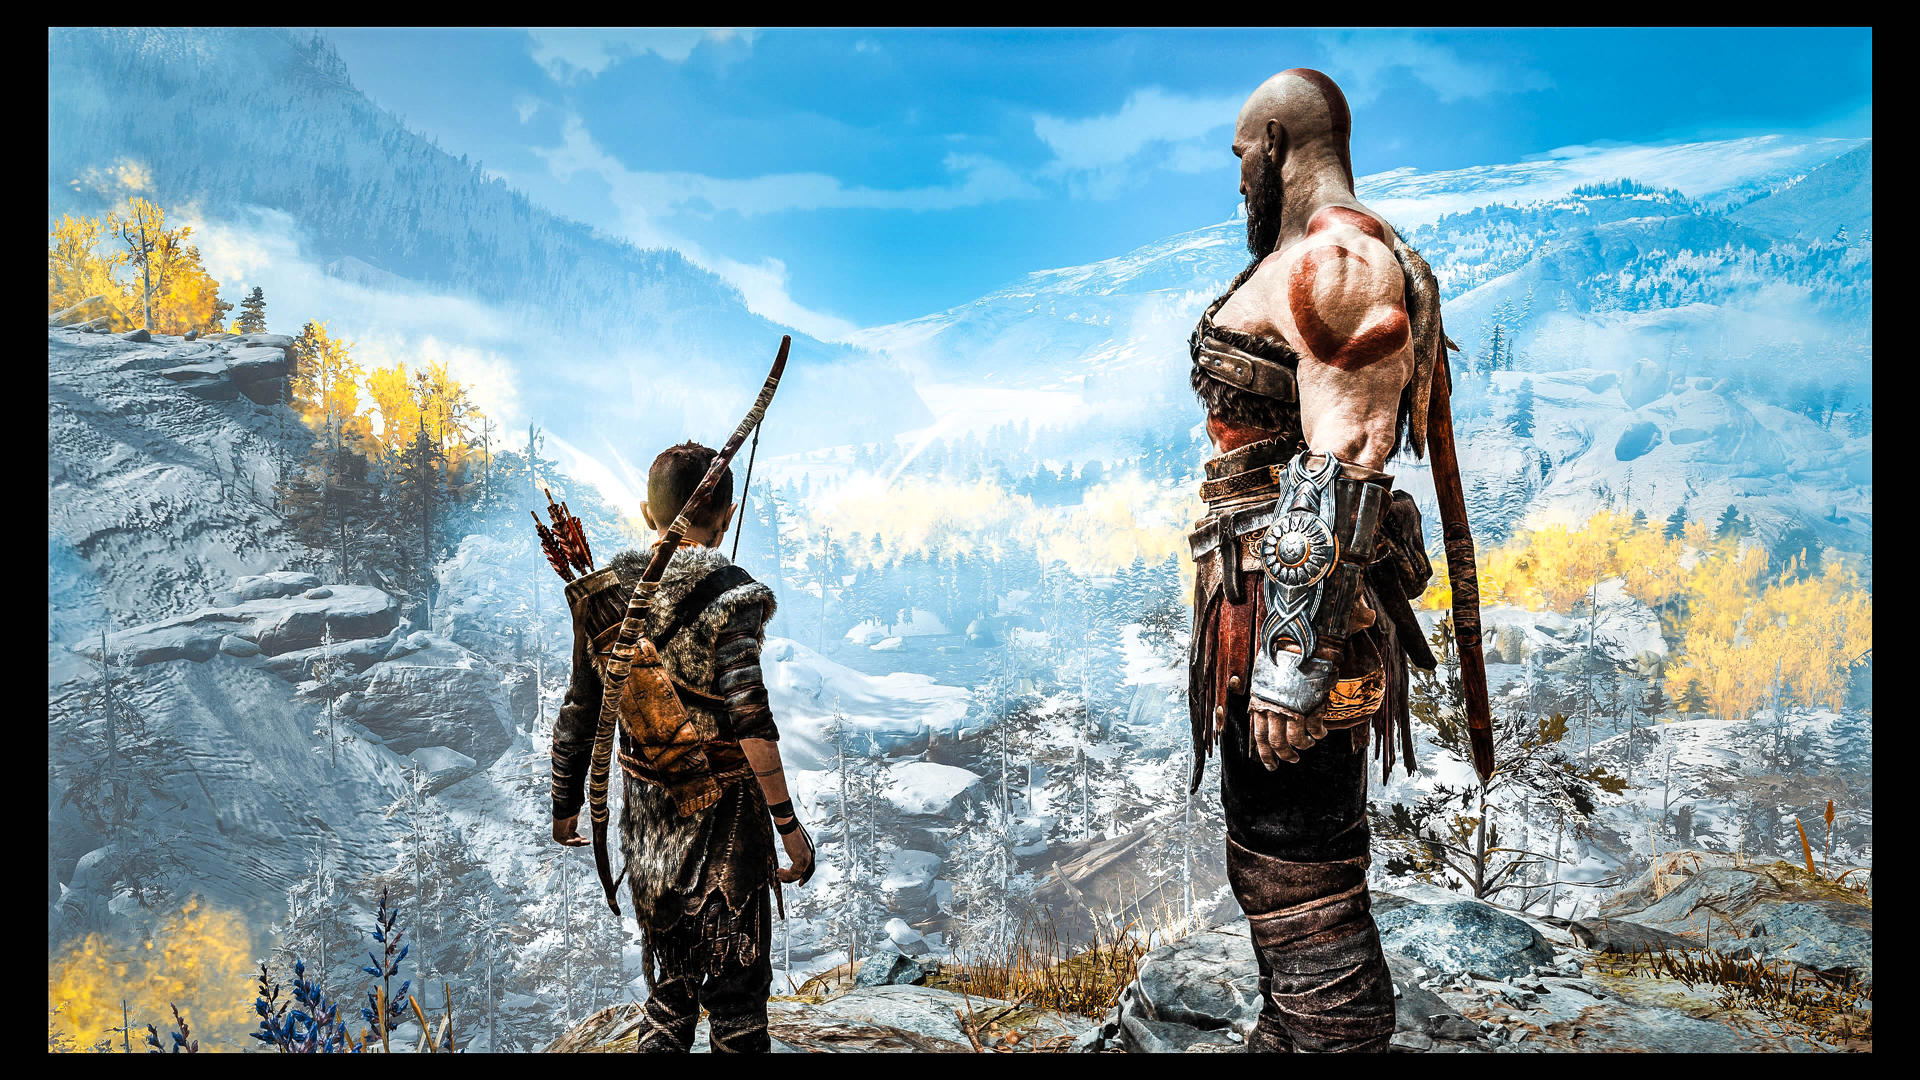 God Of War 4 Wallpaper 4k By Opticalstimulations On Deviantart